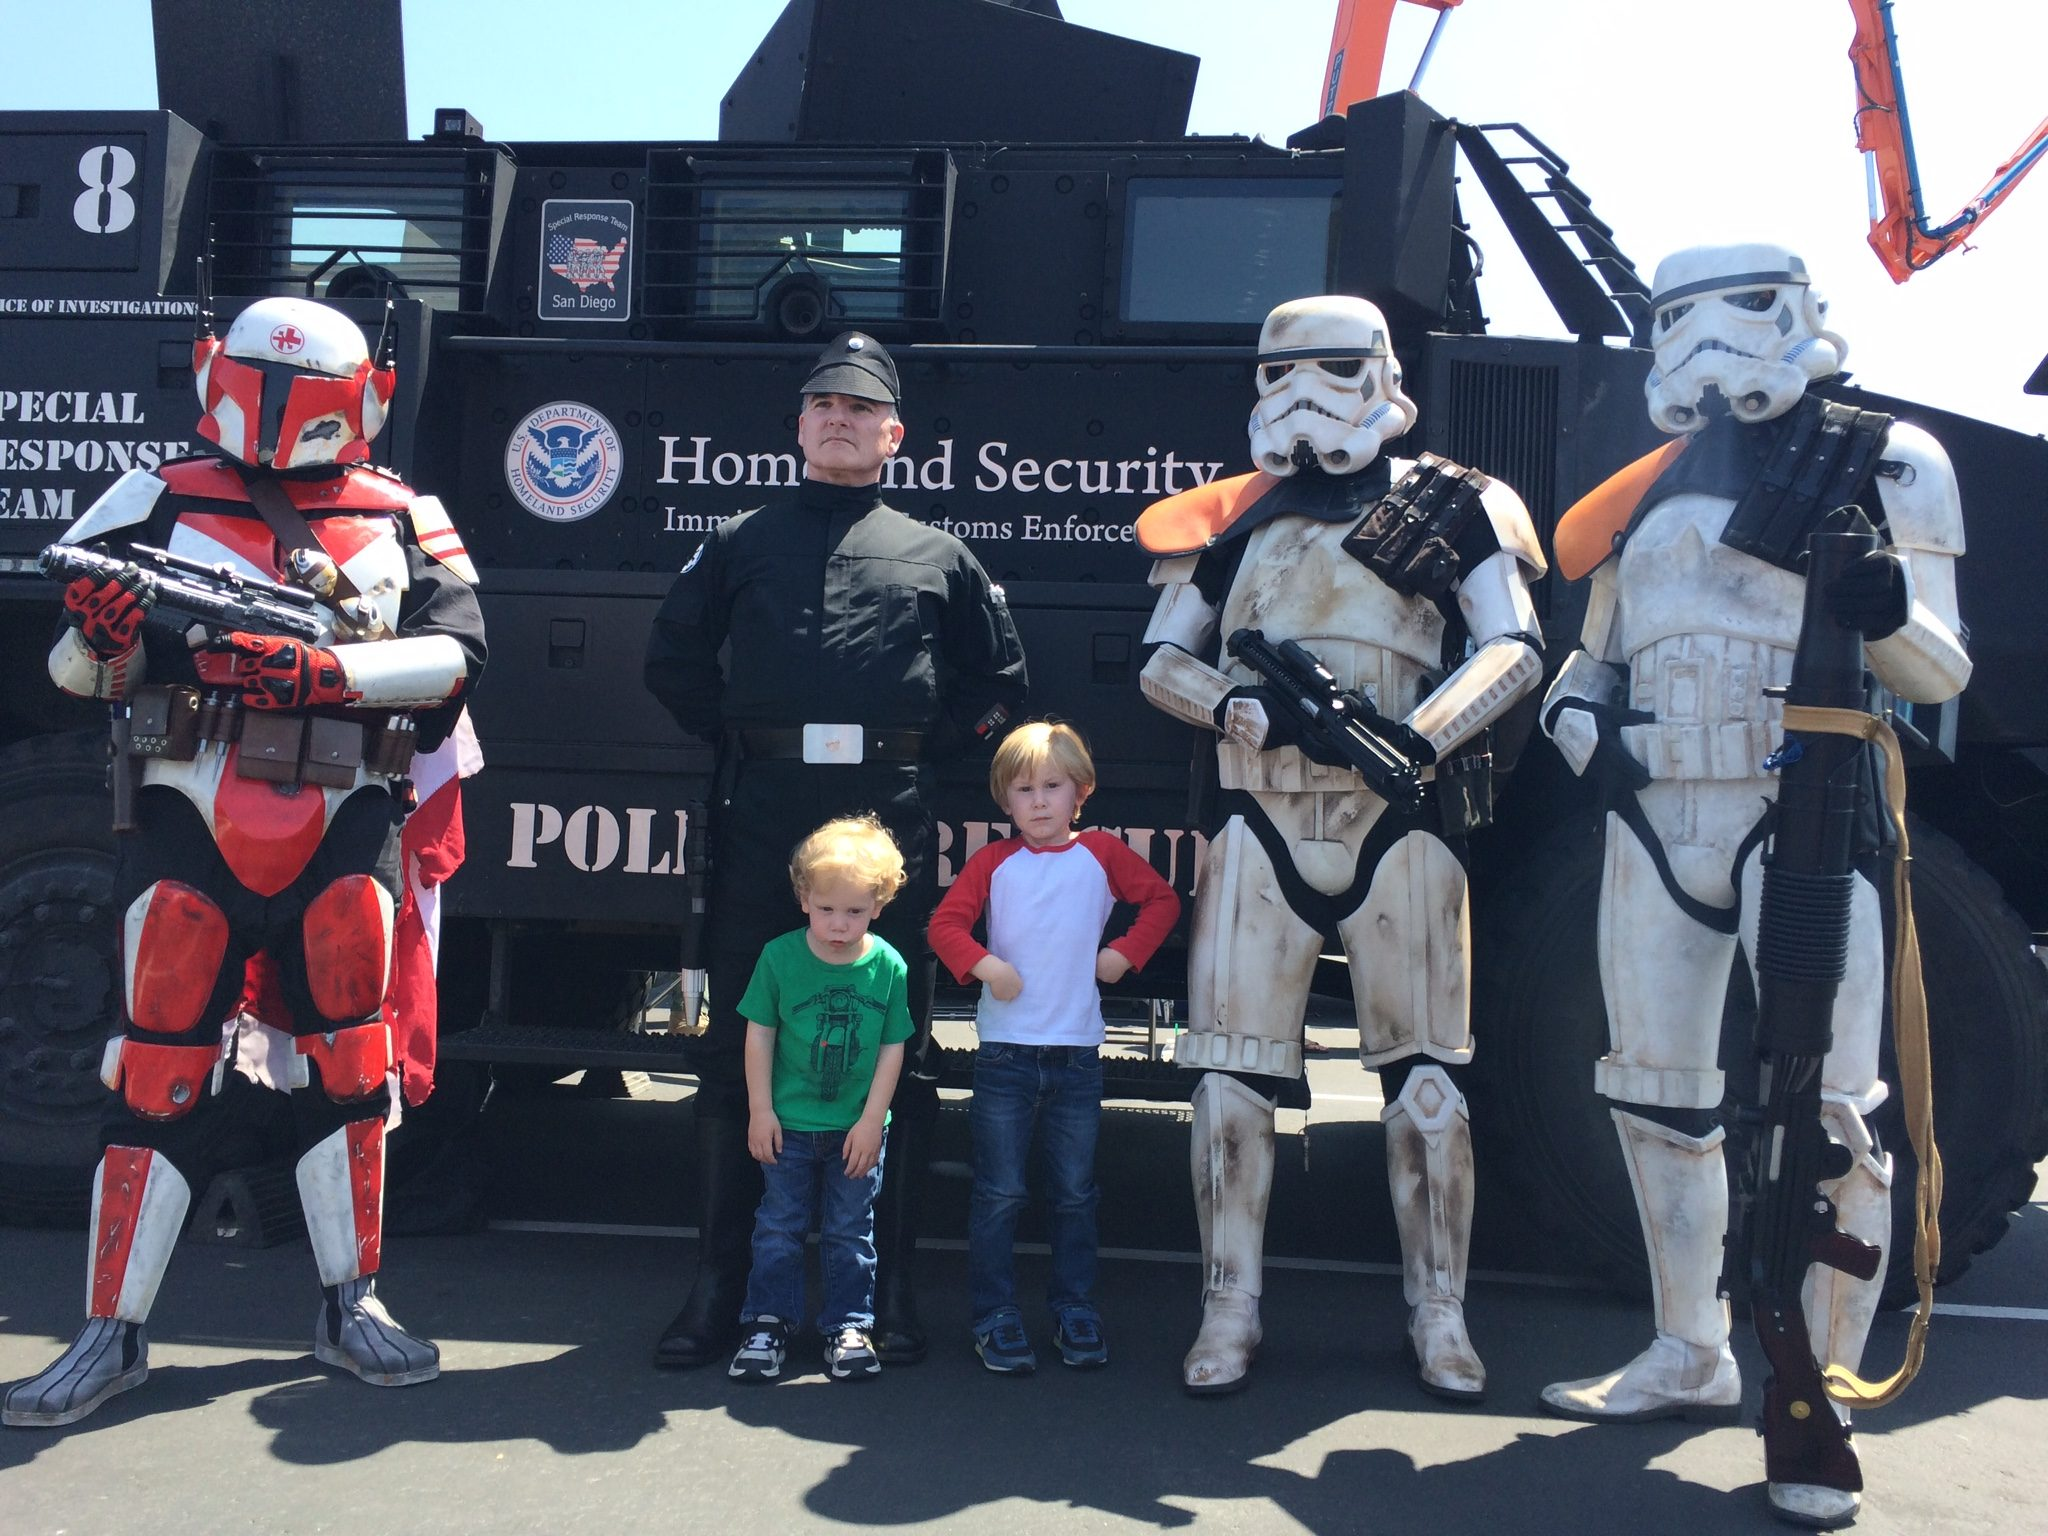 Galactic Security meets Homeland Security